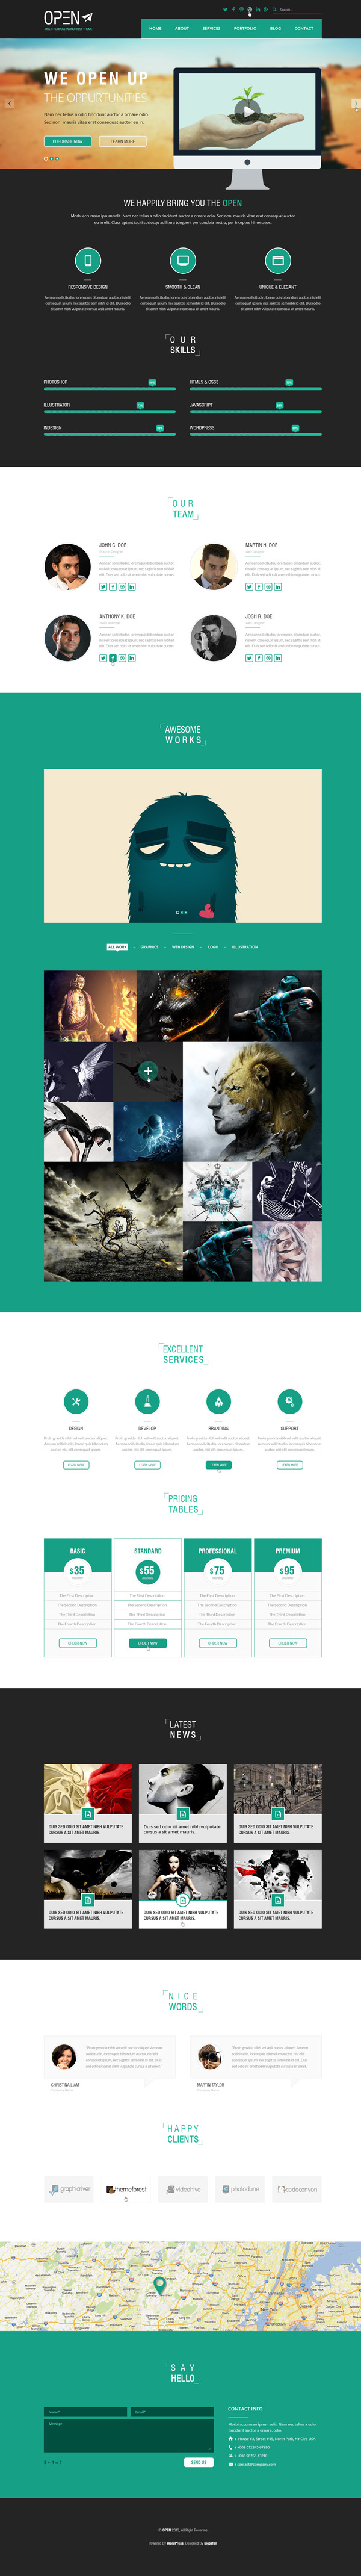 Open - Responsive Corporate and Business Template